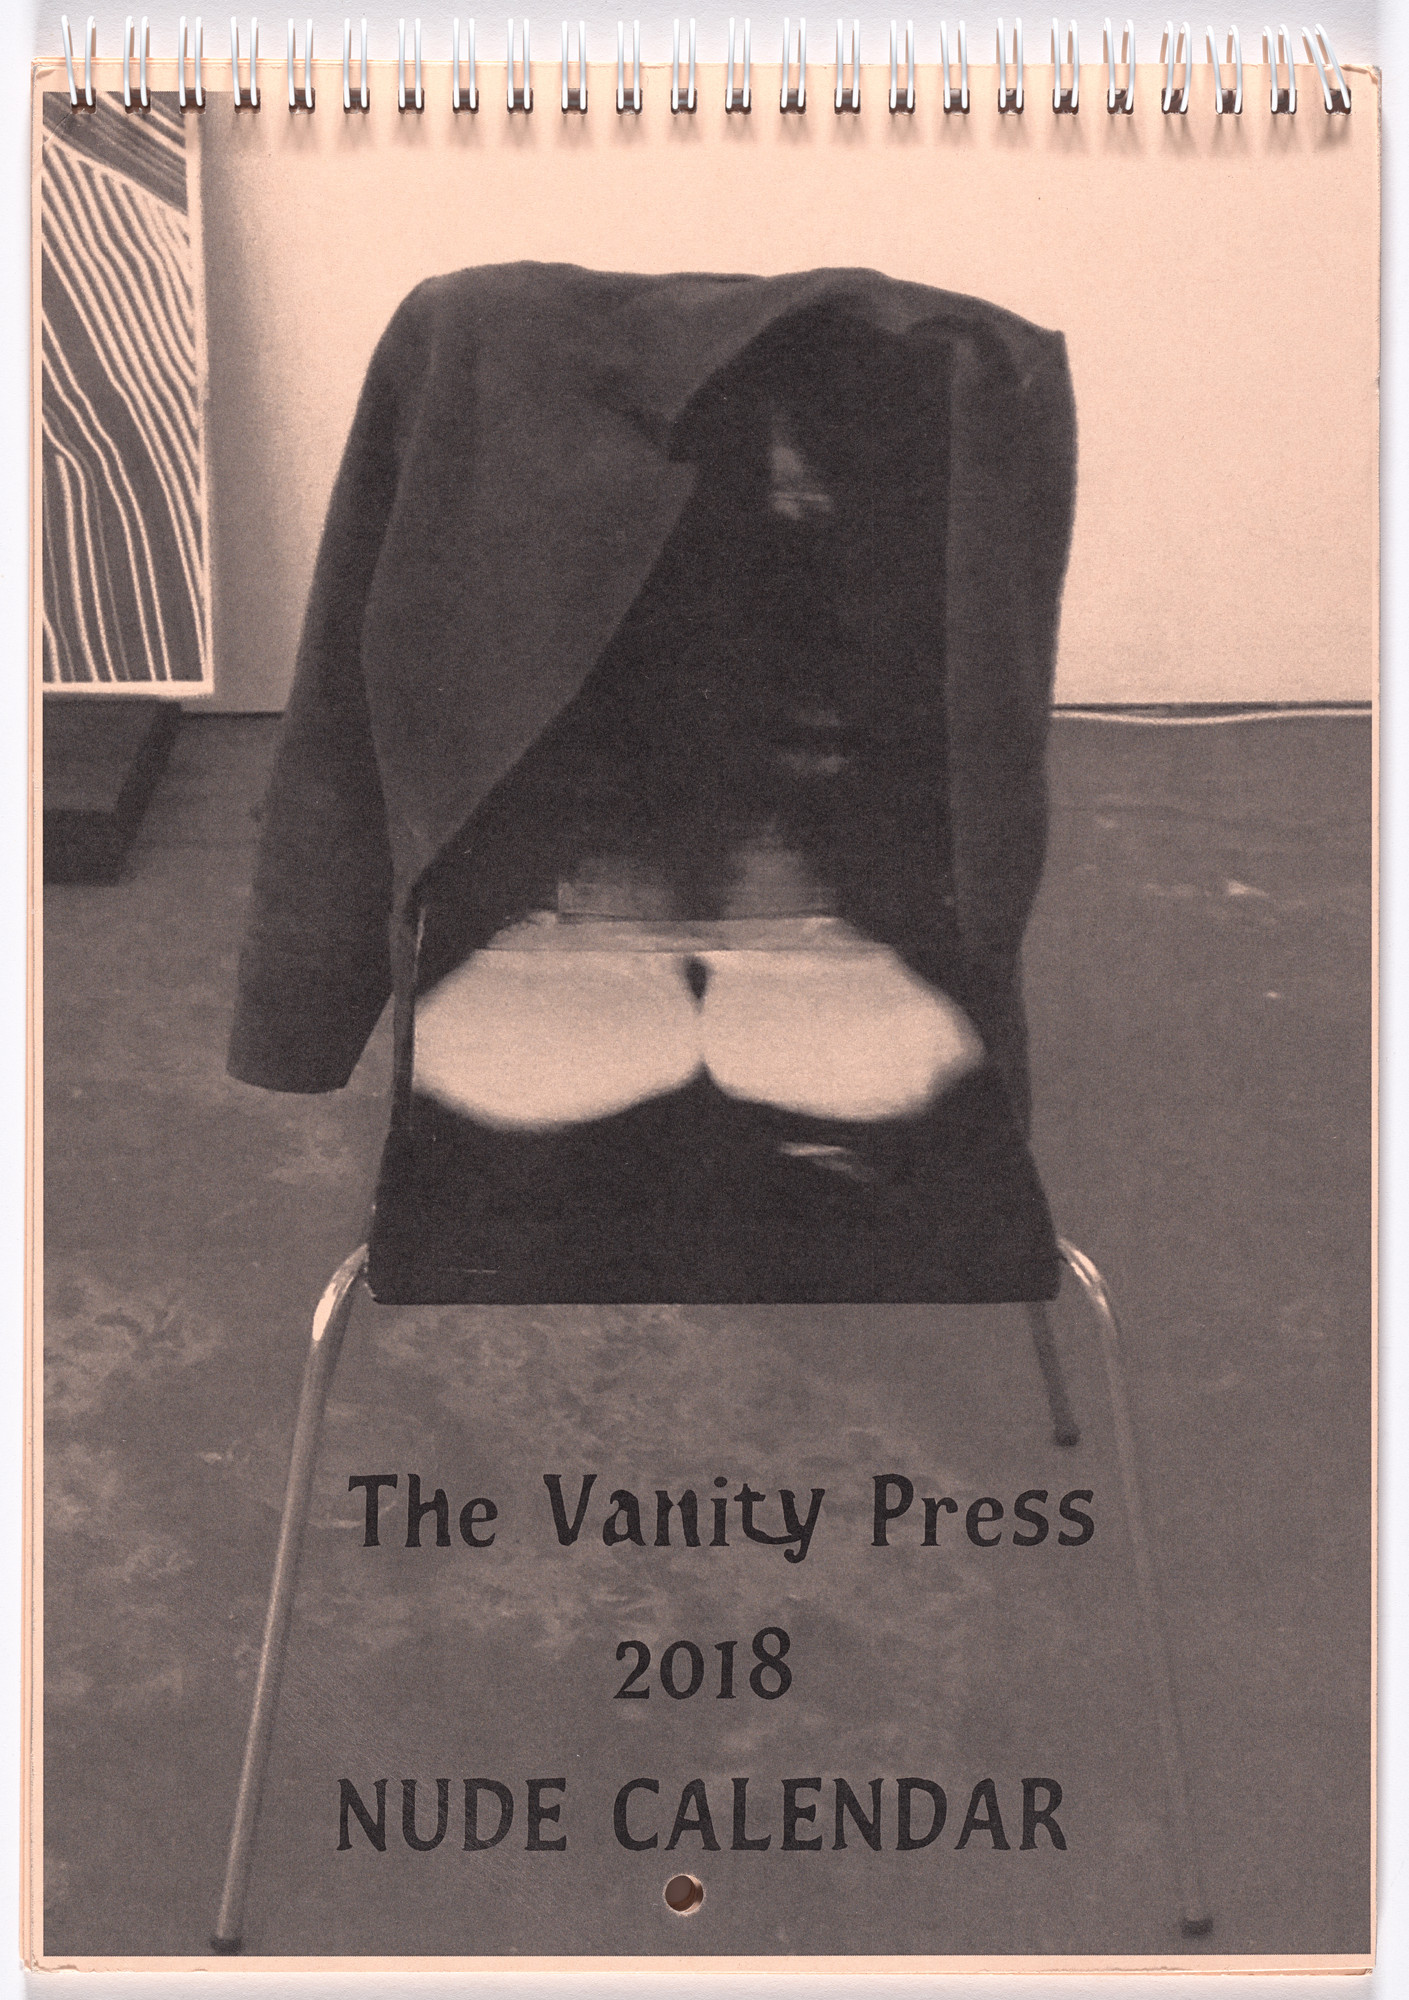 Fiona Banner. The Vanity Press 2018 Nude Calendar. 2017